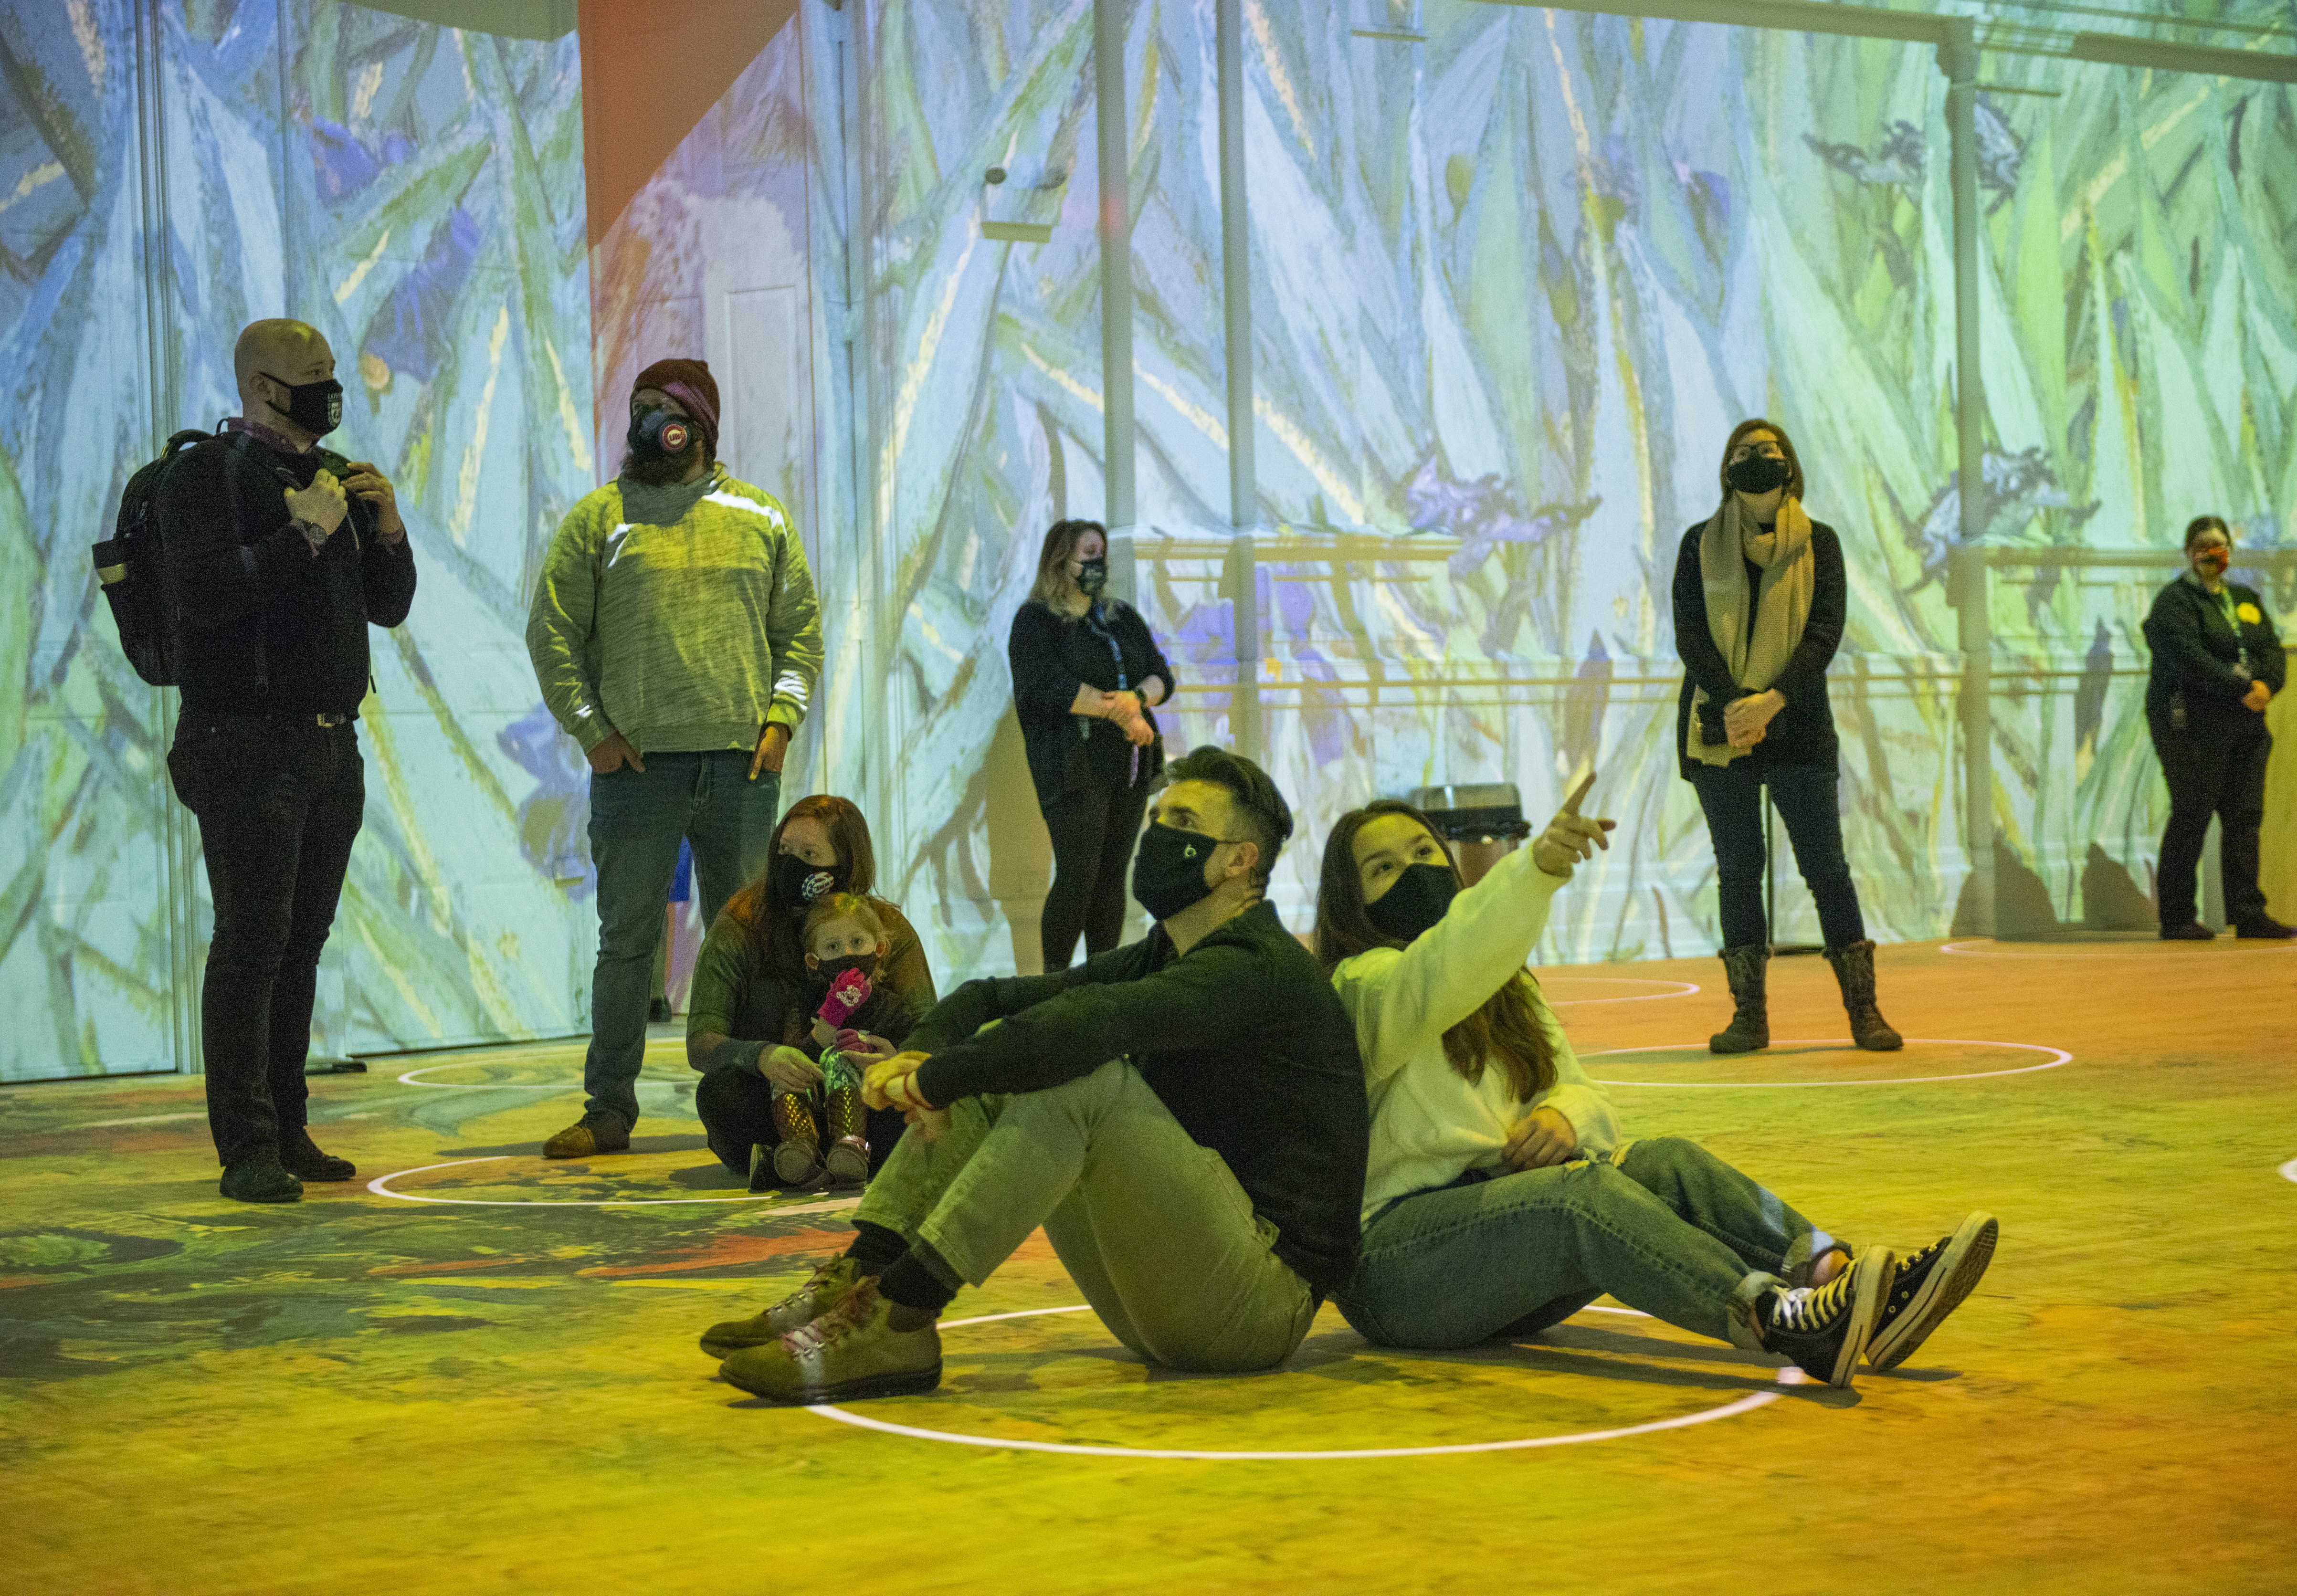 CHARLOTTE LEDGER – Inside Their Pandemic Year: Behind the Curtain at Blumenthal Performing Arts